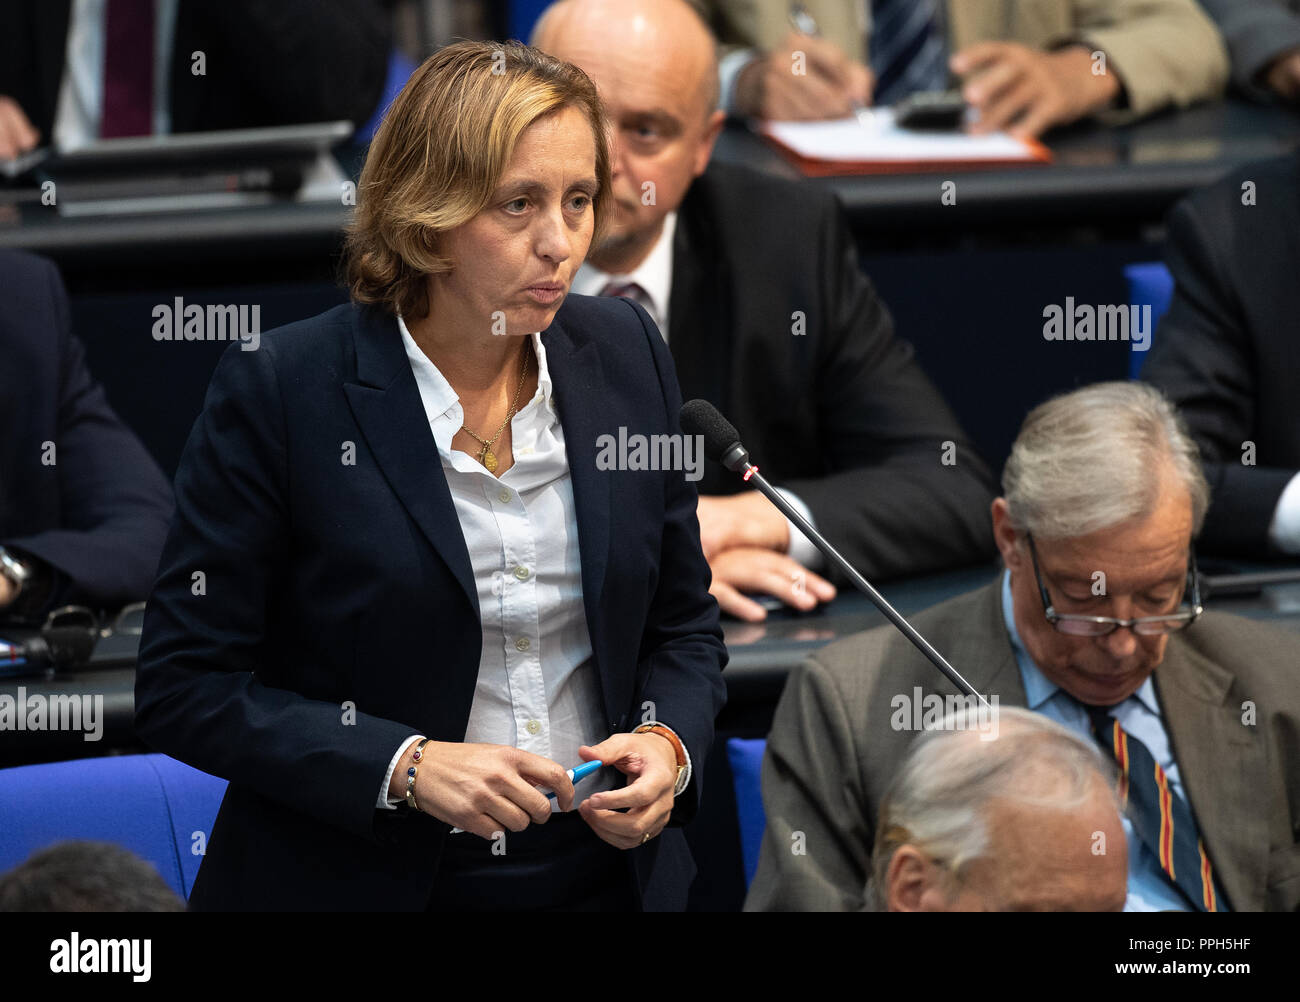 26 September 2018, Berlin: Beatrix von Storch (AfD) asks a question in the session of the Bundestag. Topics of the 51st session are a government survey with Health Minister Spahn (CDU) on the 'law for faster appointments and better care' and a question time on the results of the housing summit in Berlin. Photo: Fabian Sommer/dpa - Stock Image